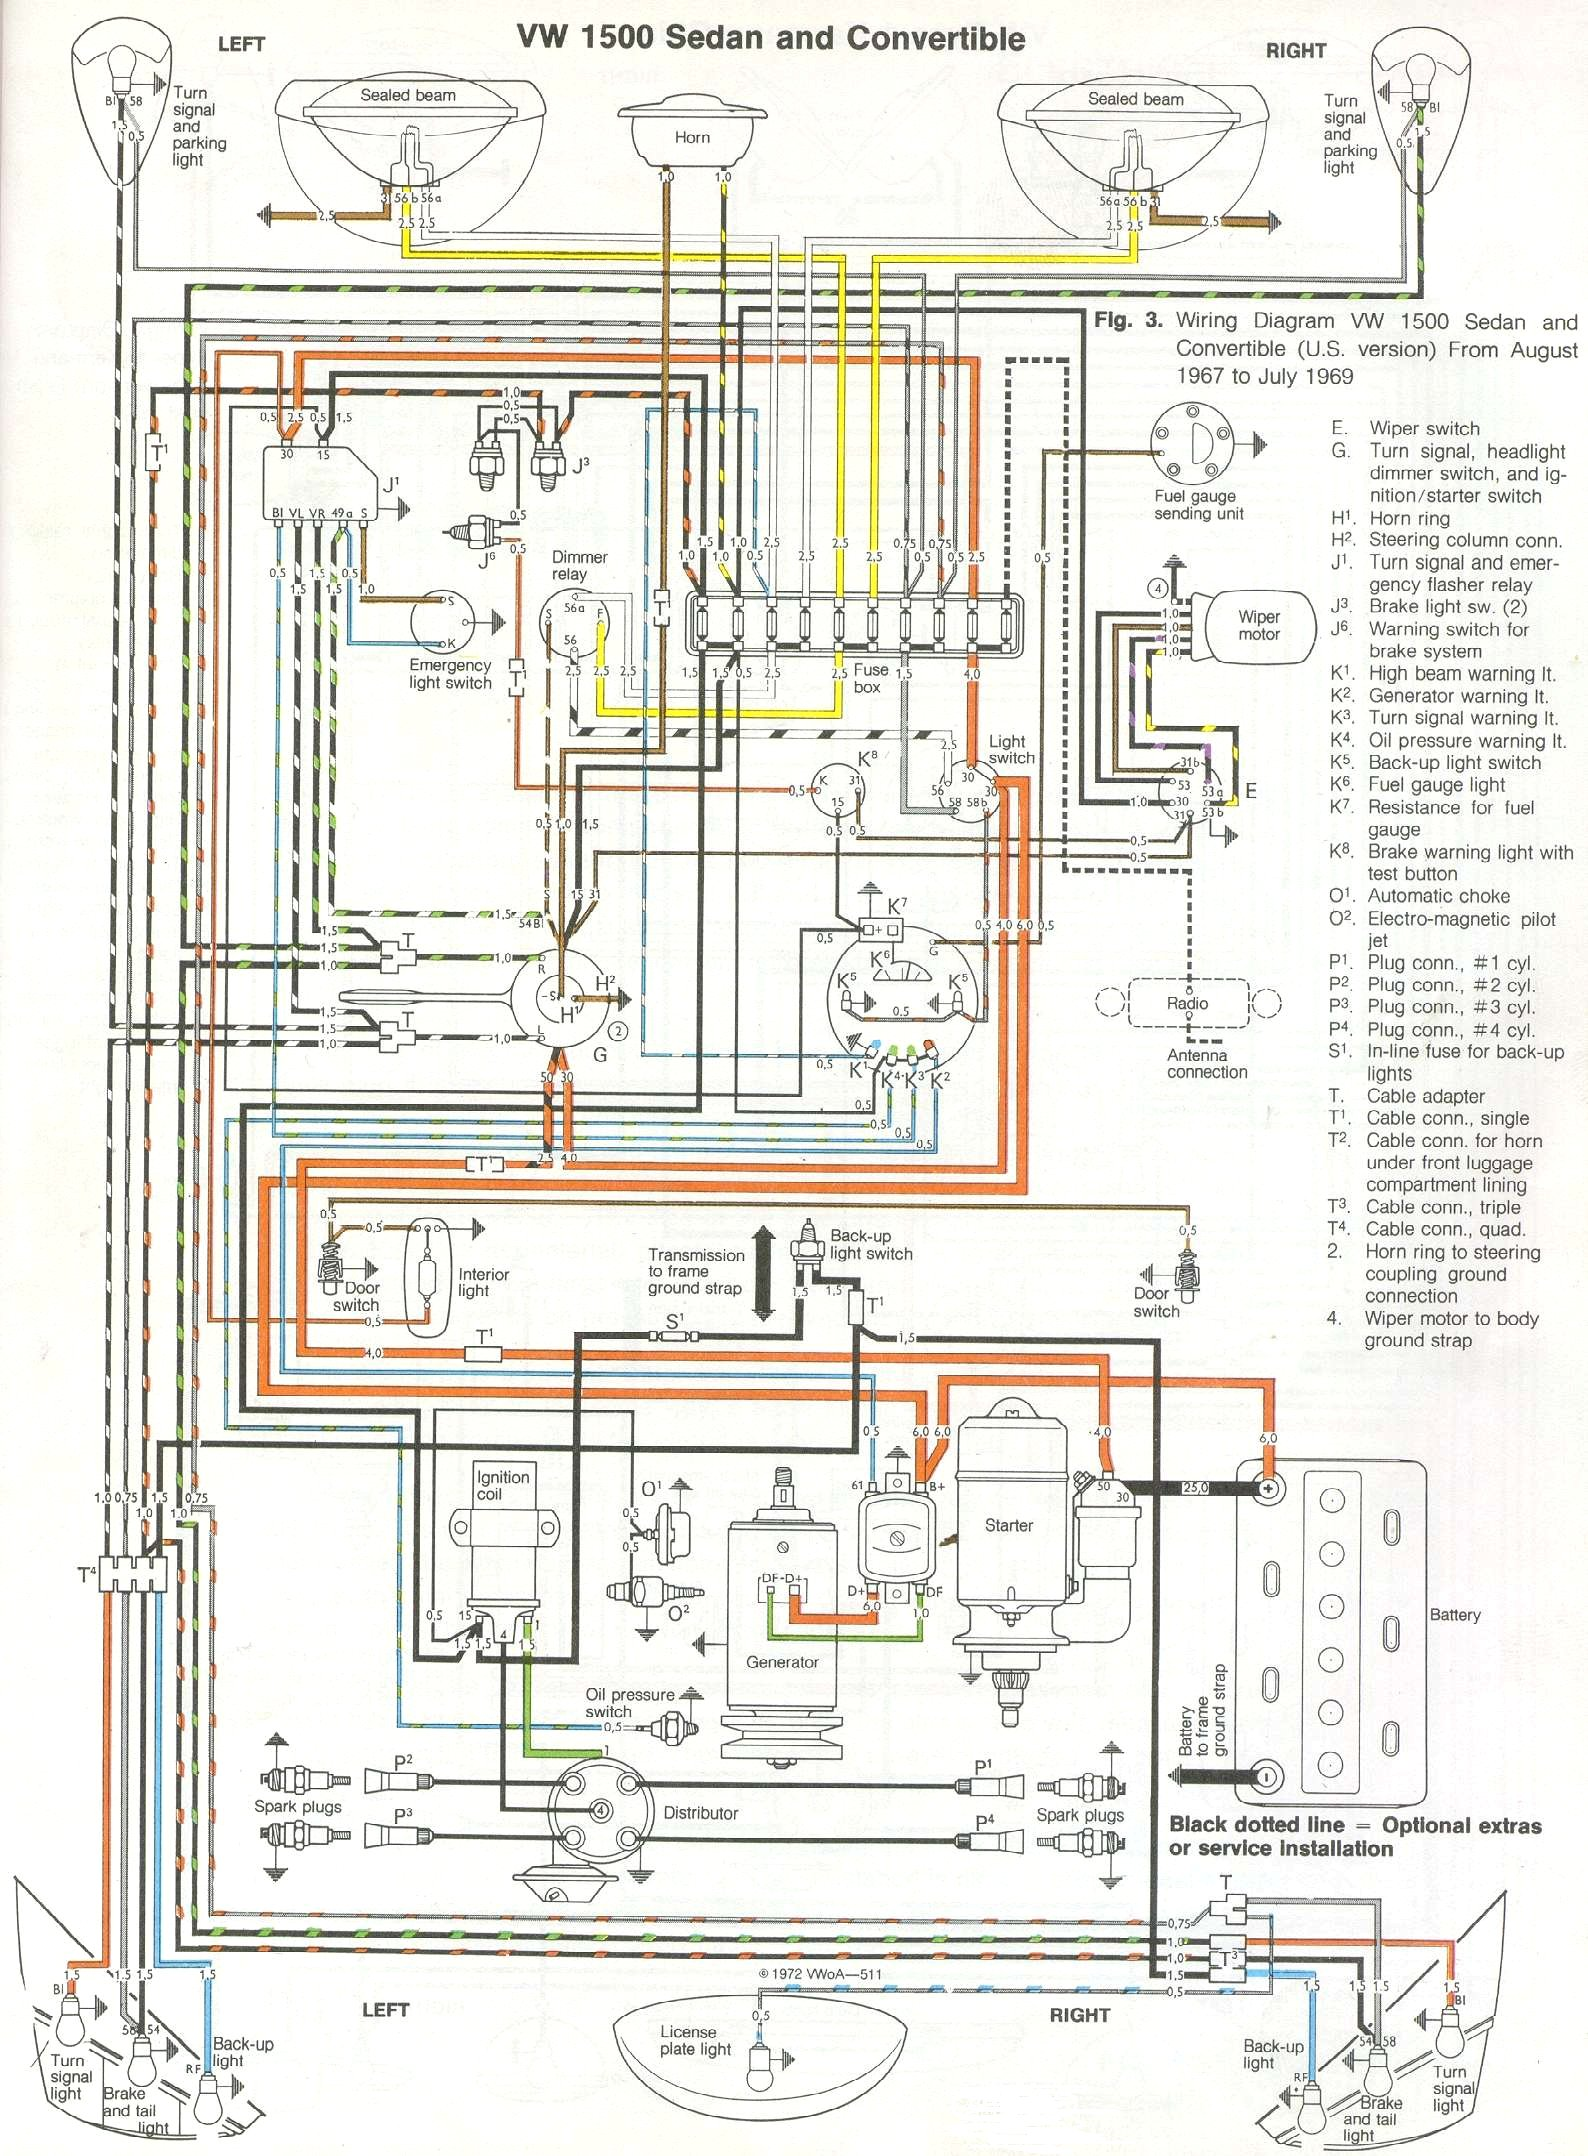 1969 Vw Squareback Wiring Diagram Schematic Online Manuual Of 1966 Porsche 912 Images Gallery